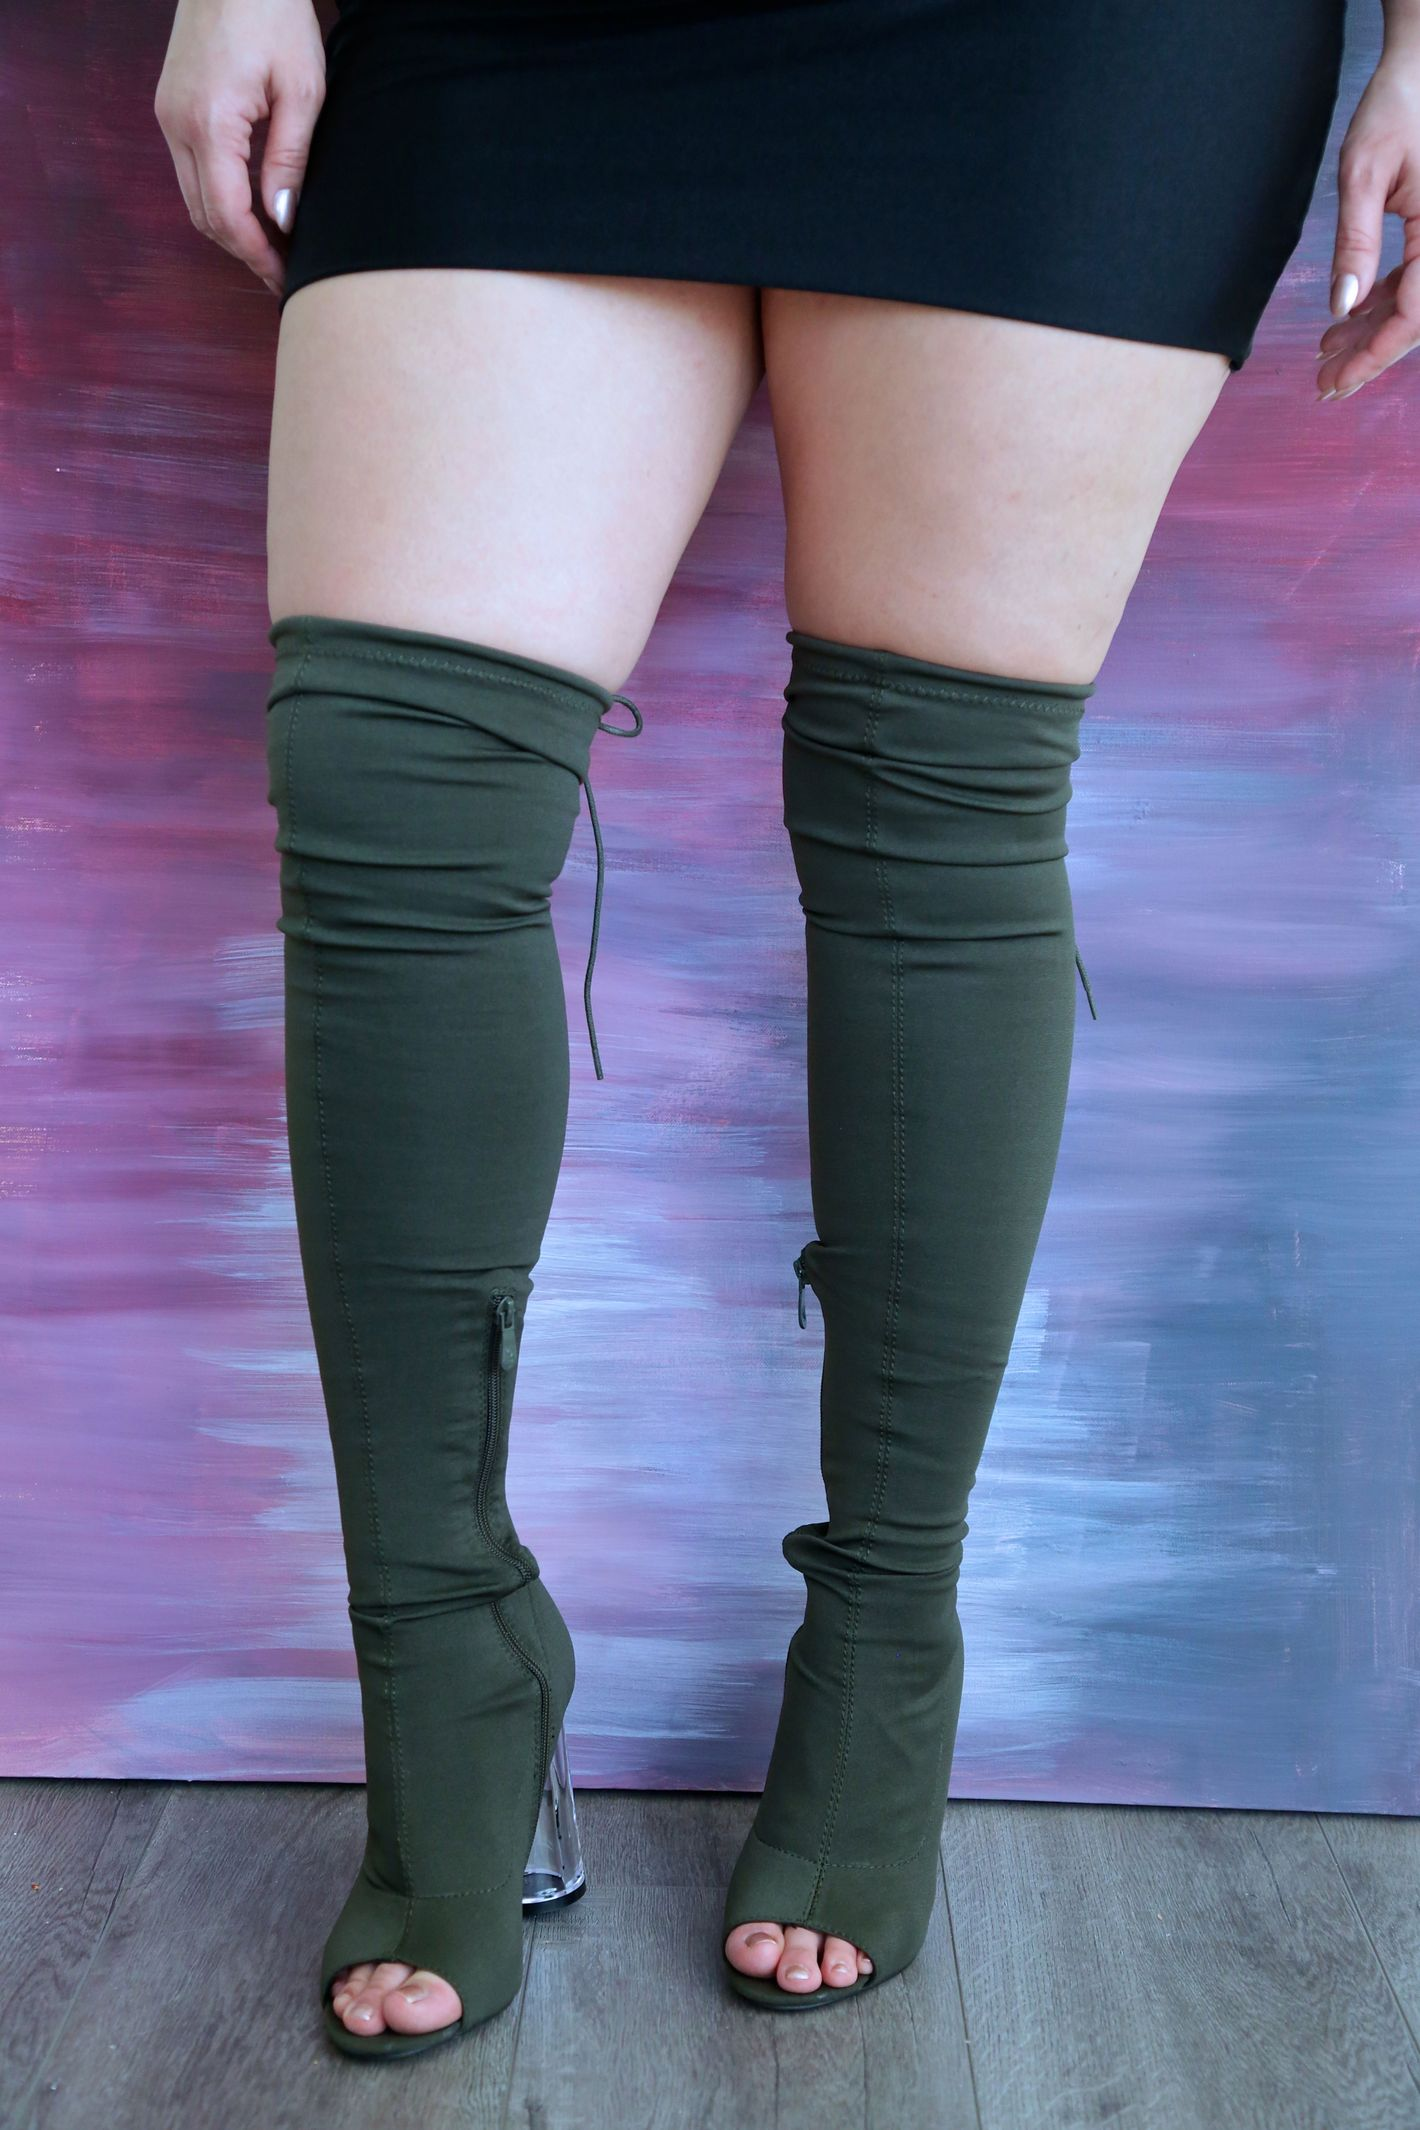 dc5a1bbf852 5 Thigh-High Boots That Will Actually Fit Over Your Legs